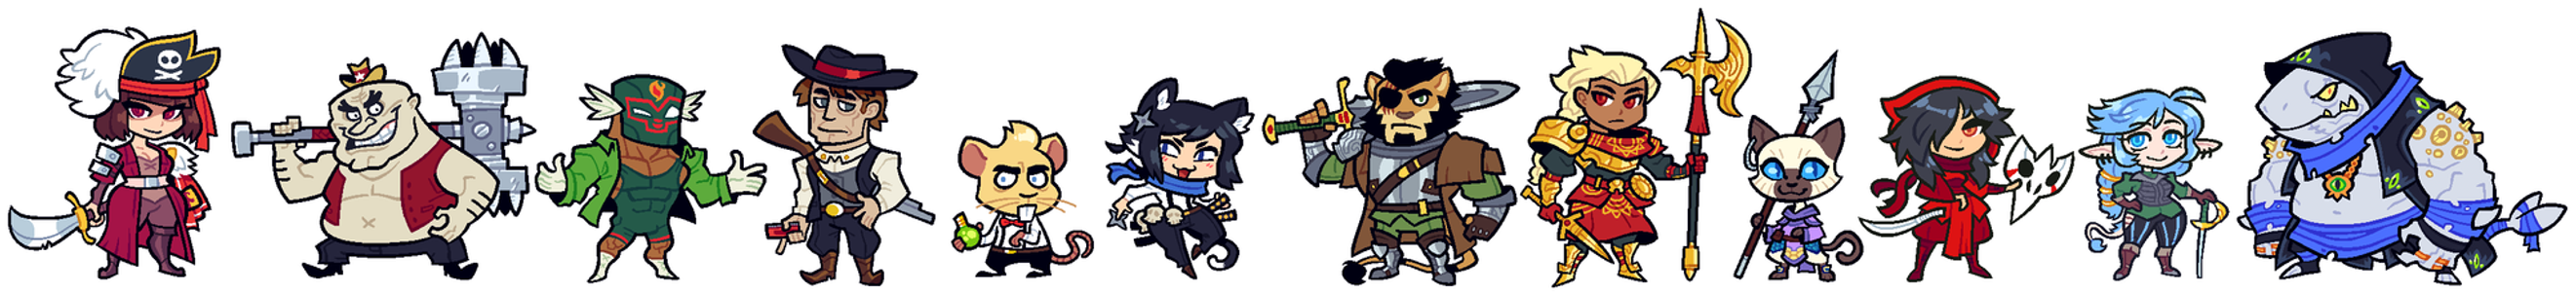 COMMISSION: DnD Group 12 by Cubesona